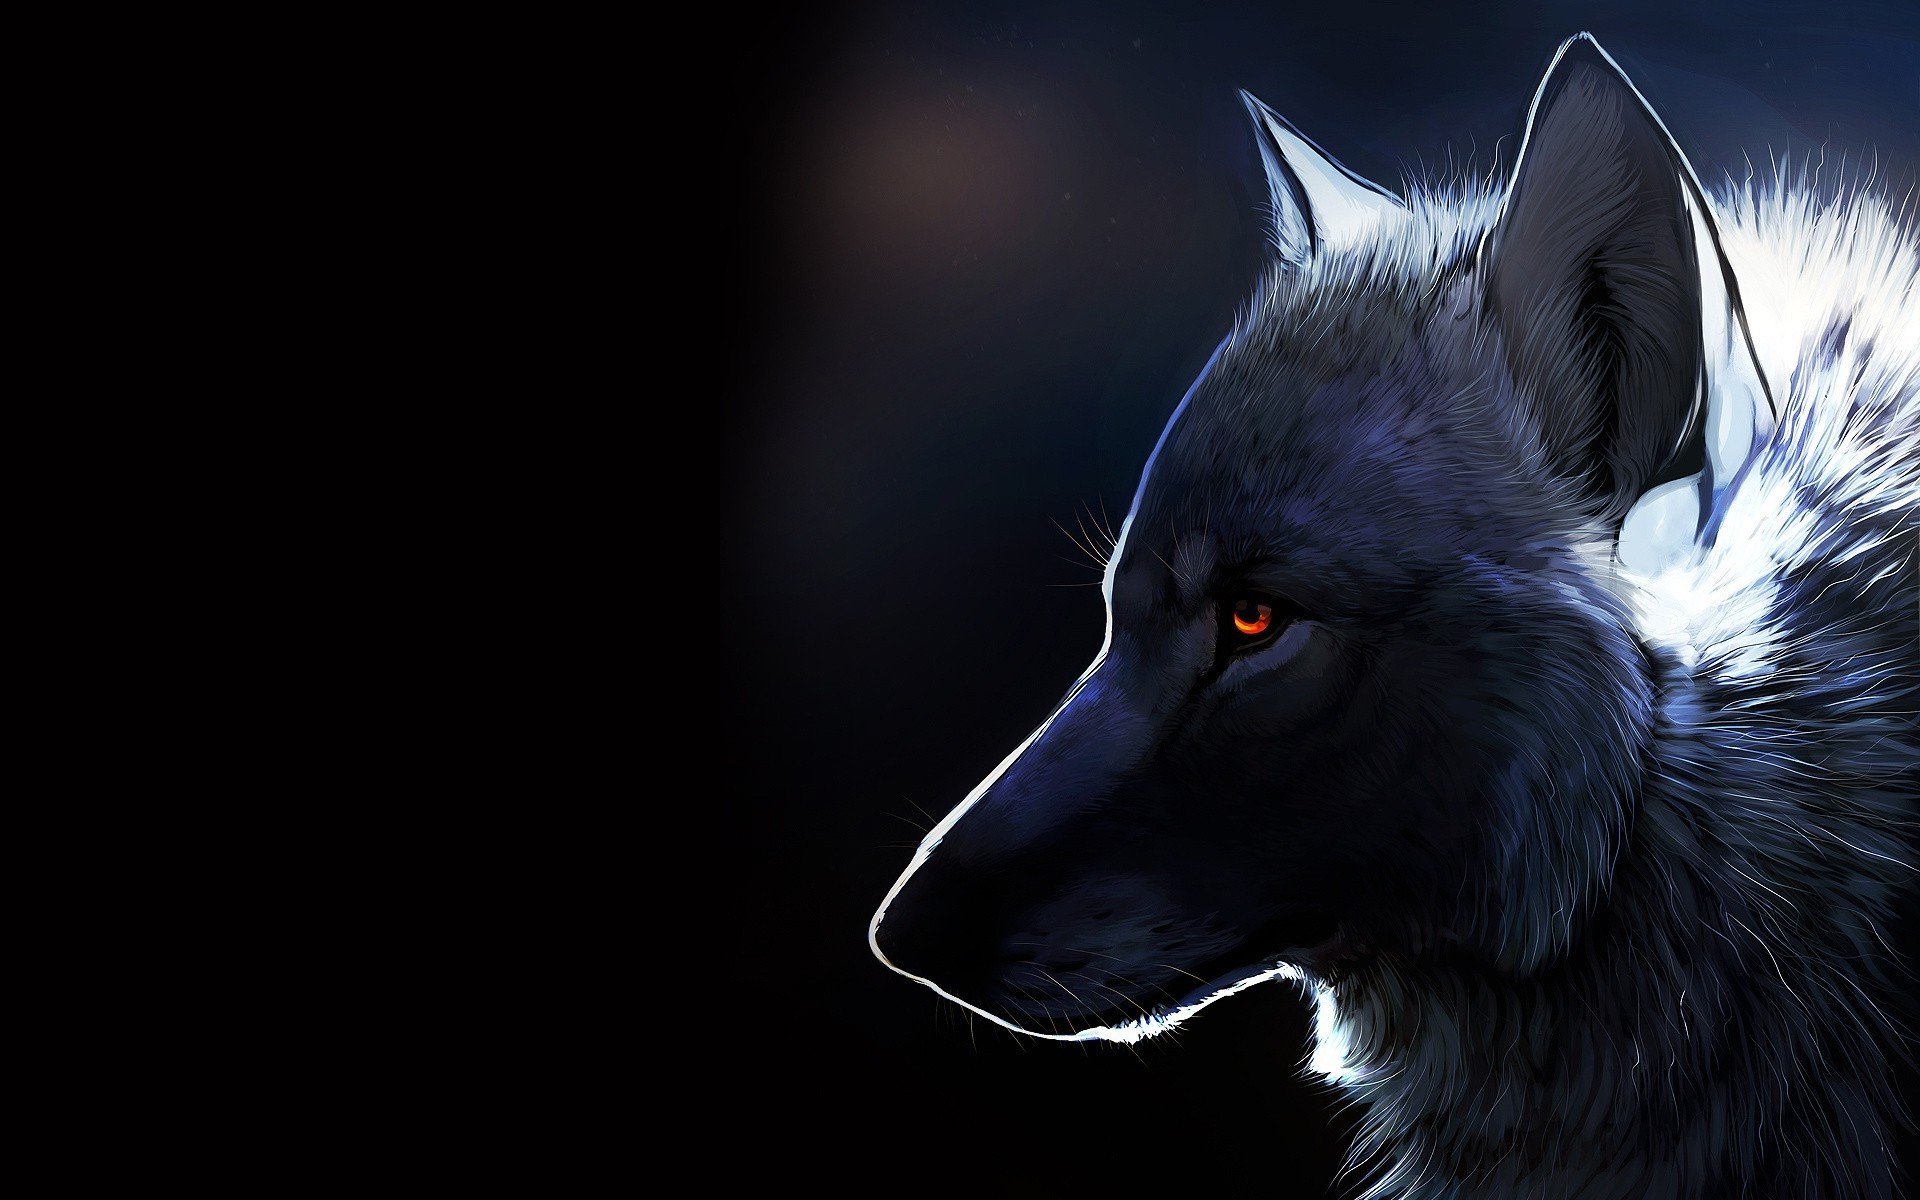 Free 3d Hd Wallpapers For Mobile Hd Wolf Backgrounds Pixelstalk Net